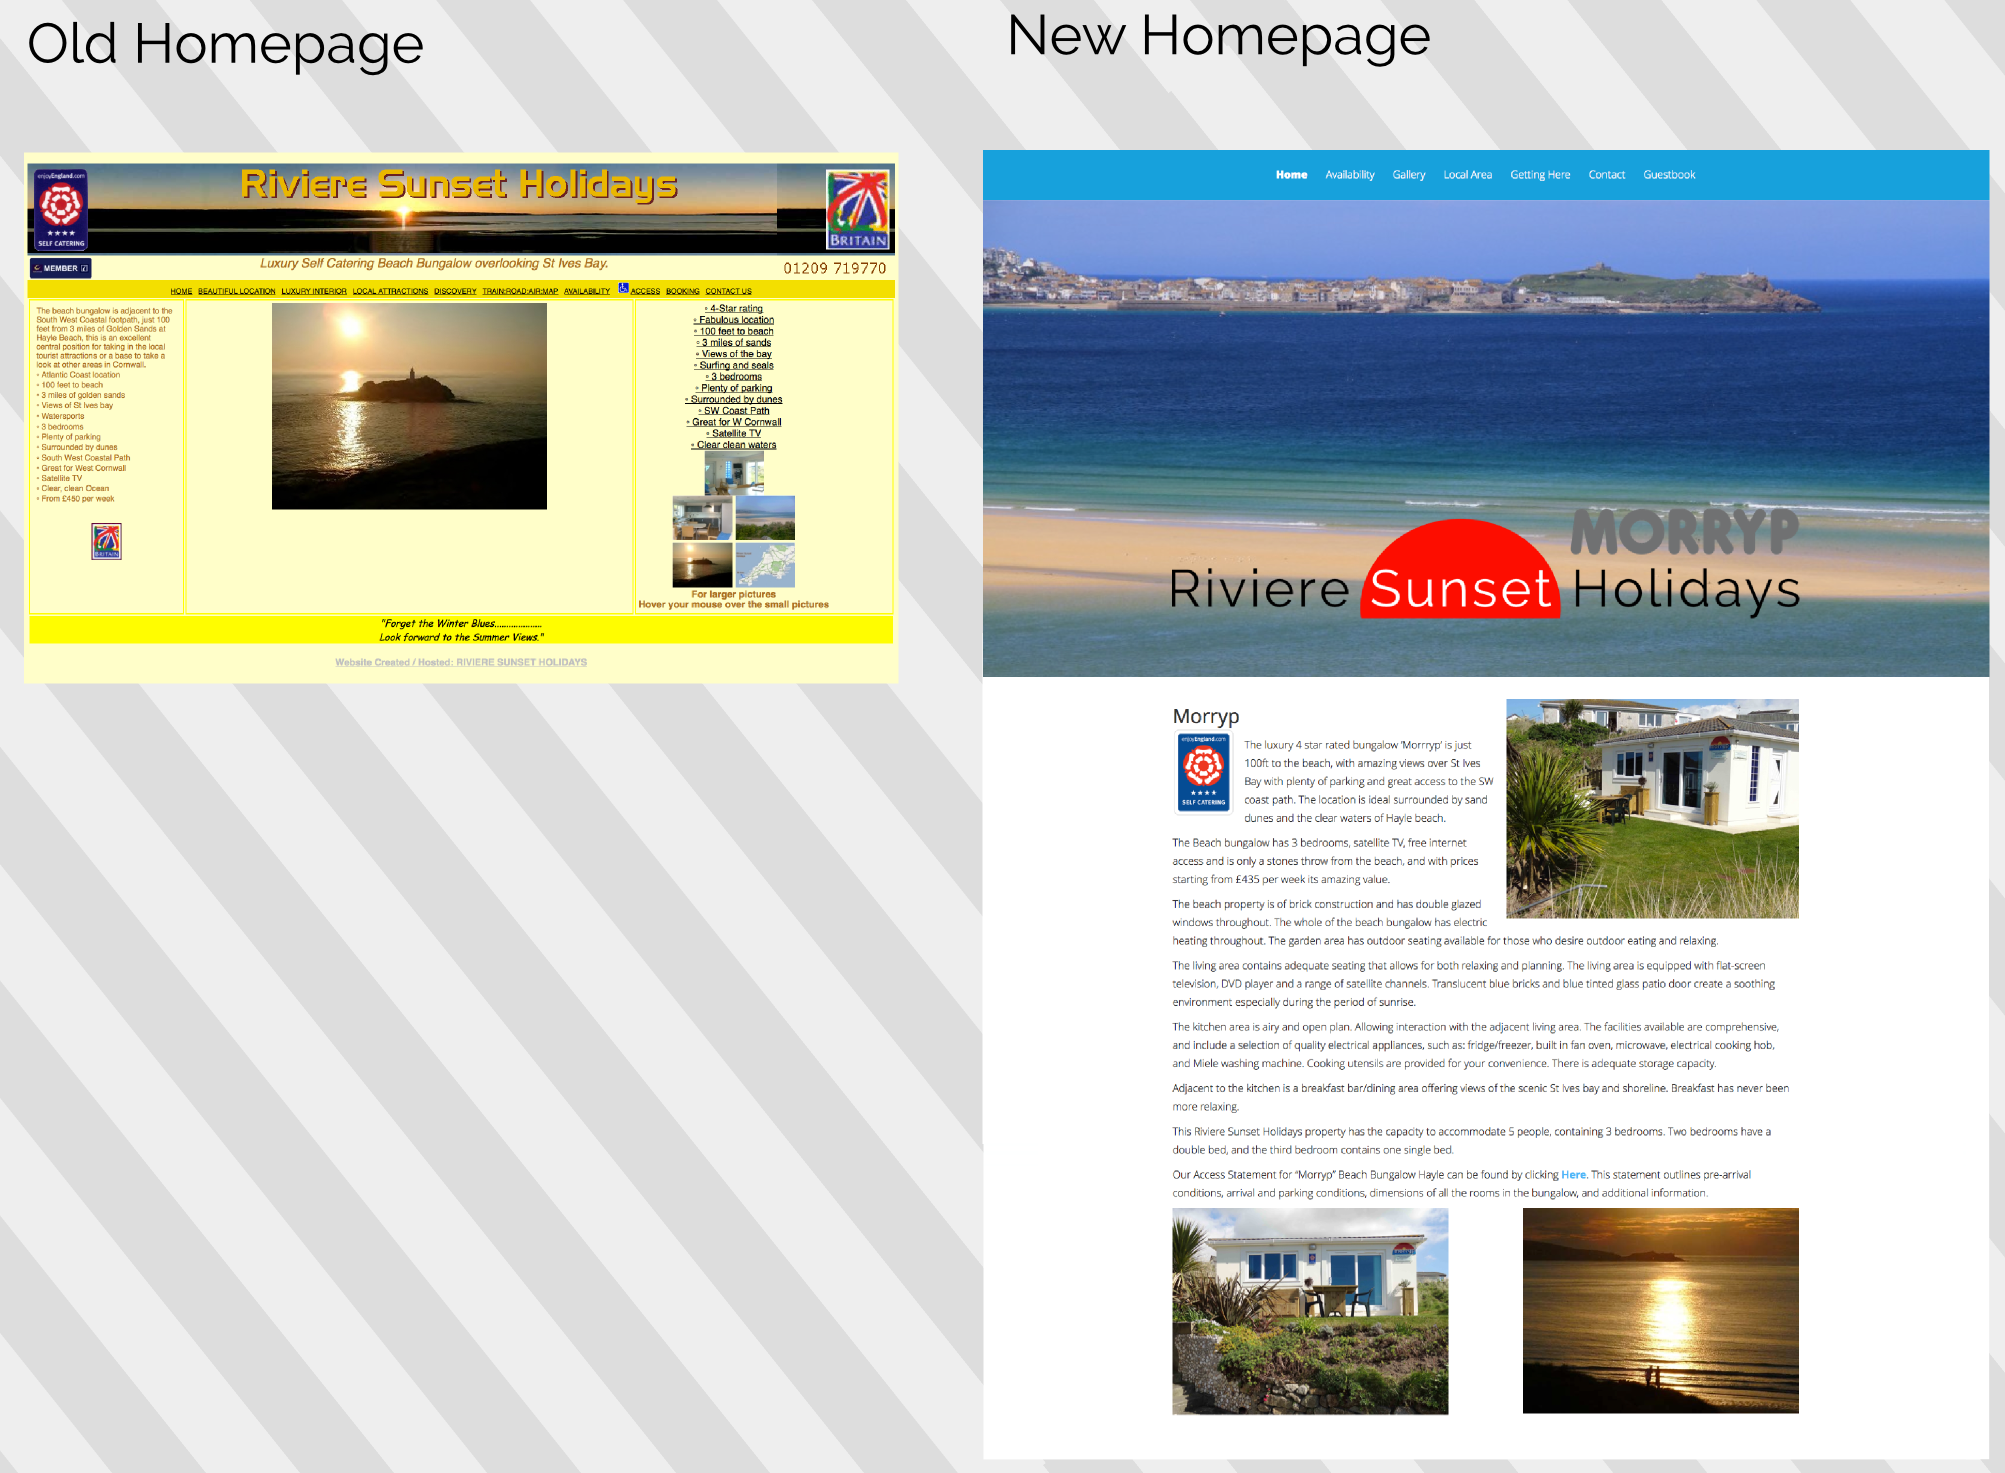 homepage compare new website